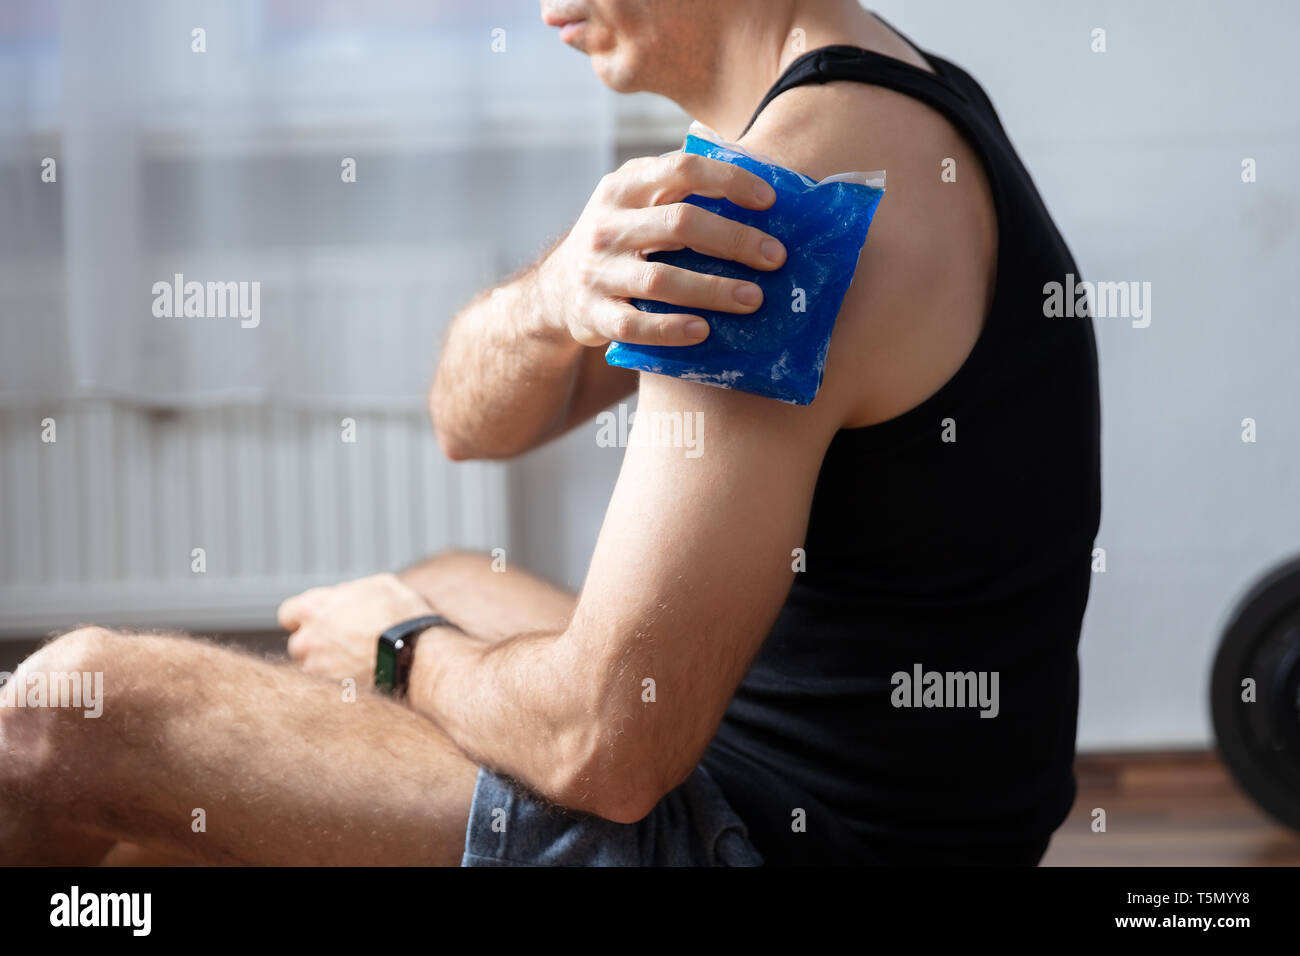 Close-up Of Male Trainer Applying Cool Gel Pack On His Injured Shoulder At Gym - Stock Image